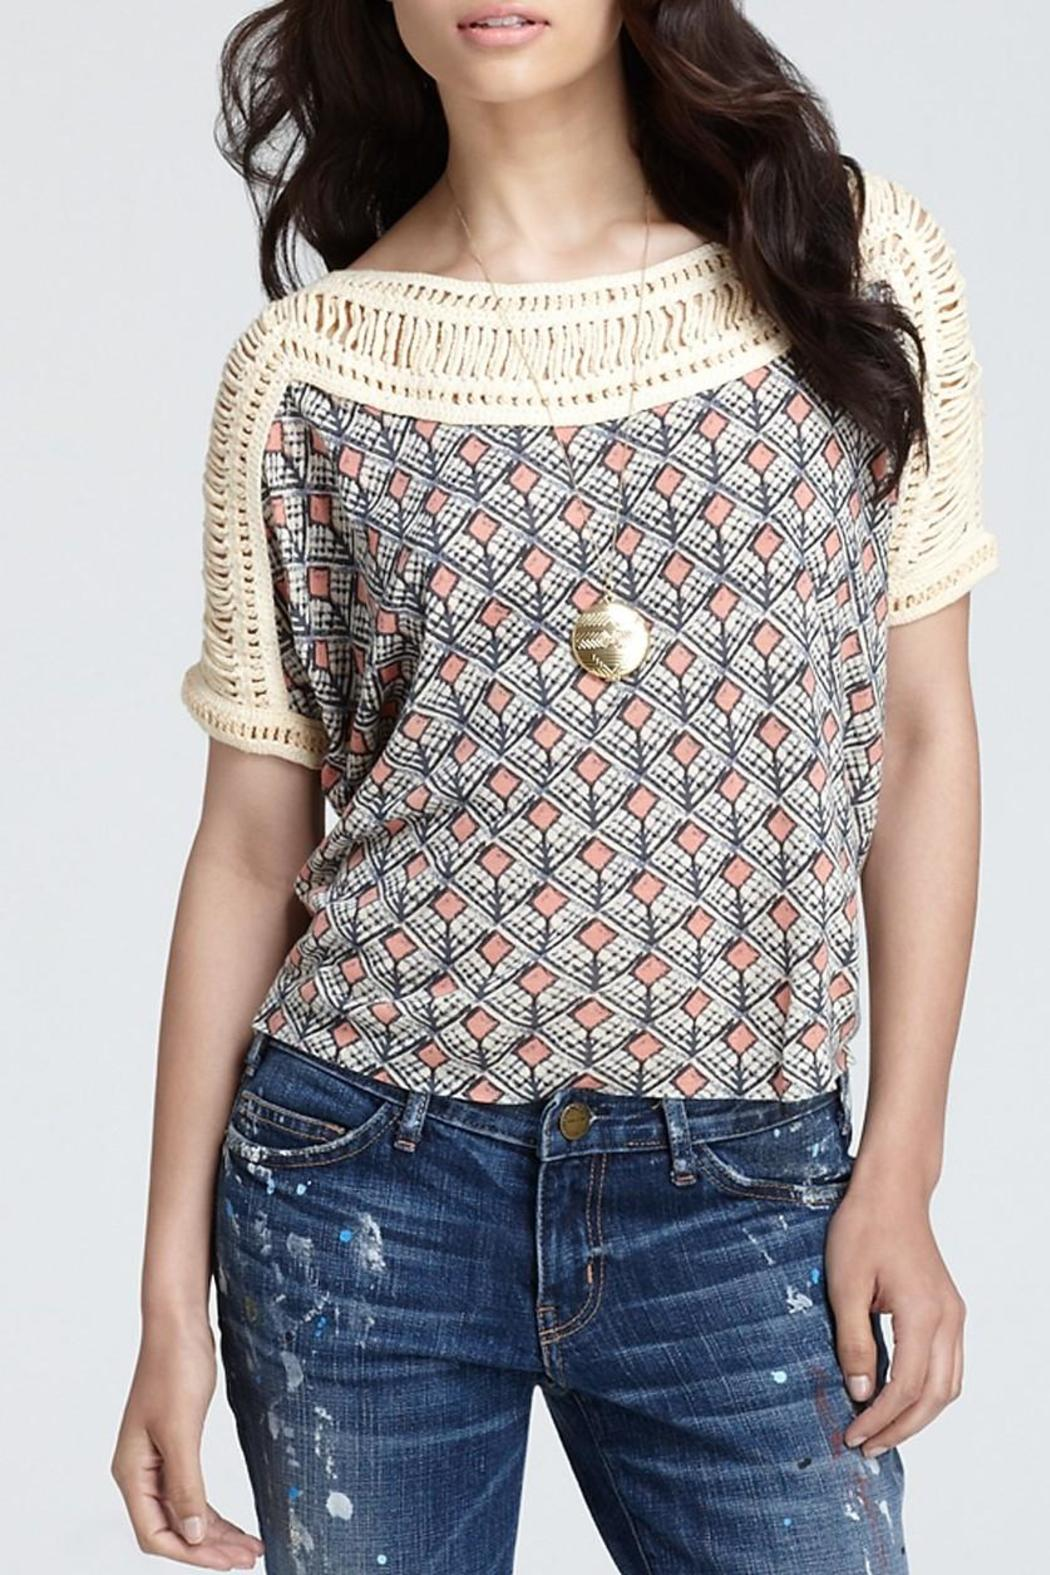 Free People Tribal Grunge Top - Front Cropped Image